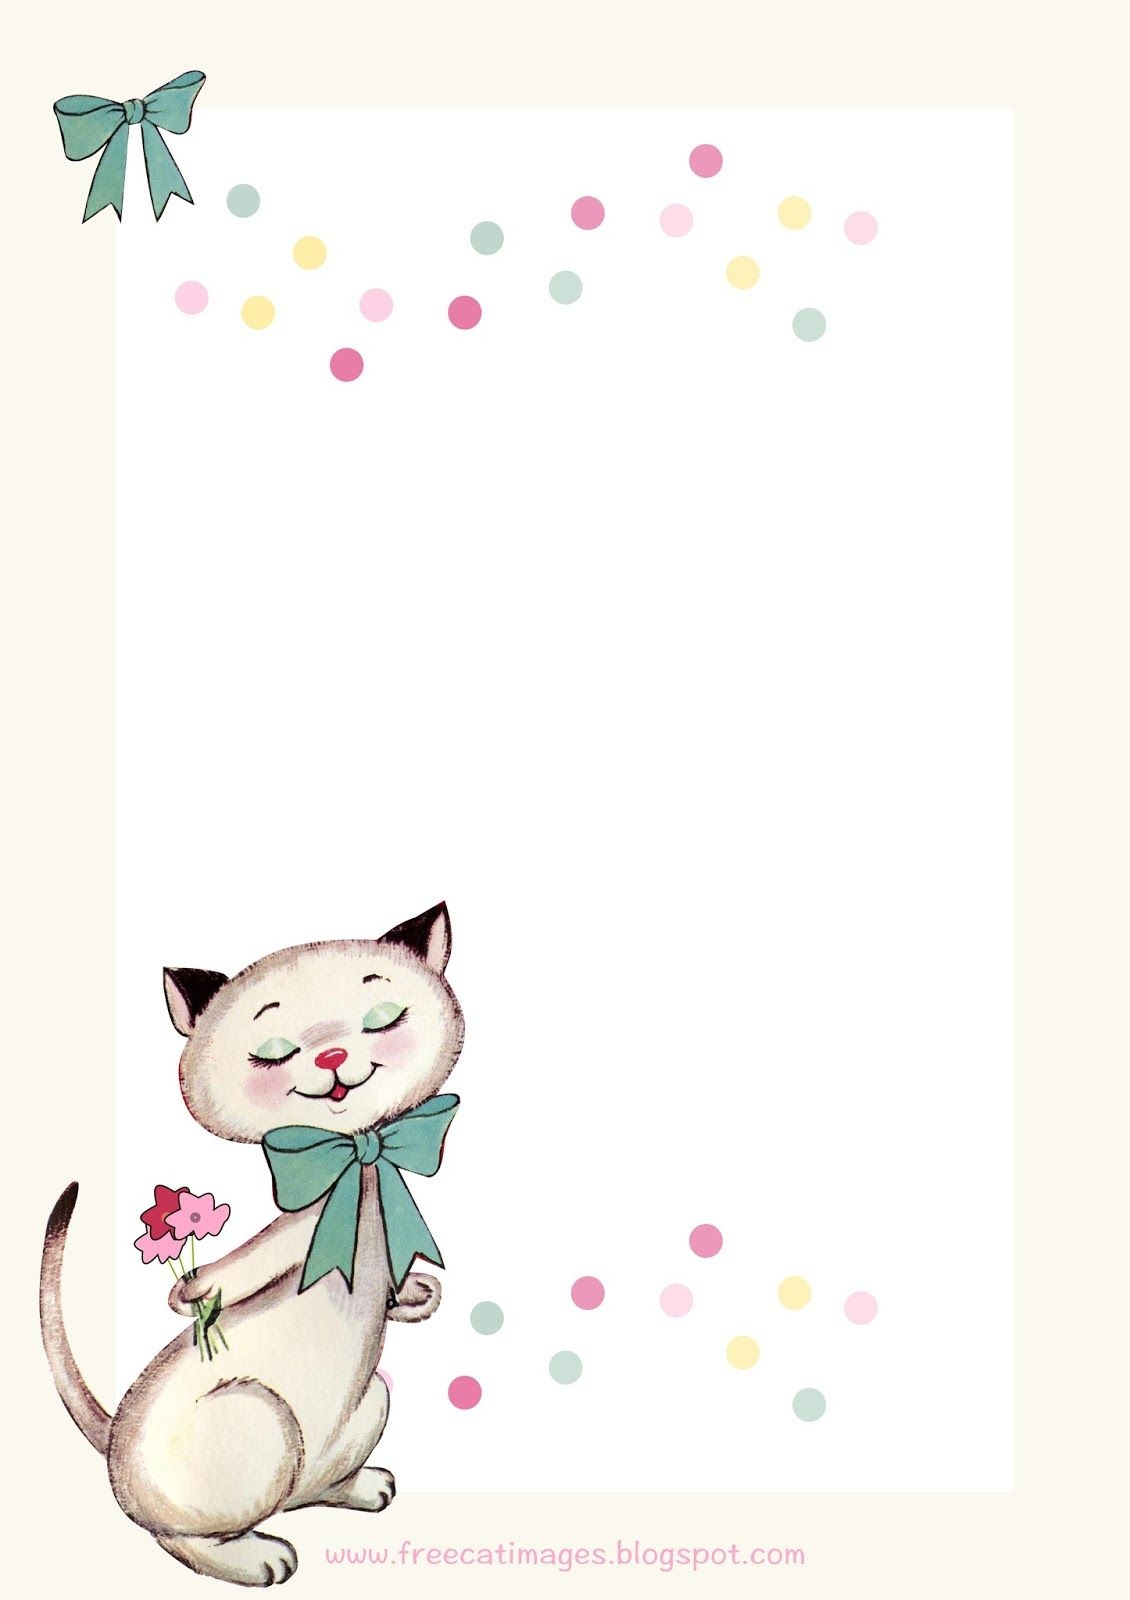 Free Cat Images: Free Printable Vintage Kitty Stationery - Freebie - Free Printable Kitten Birthday Invitations